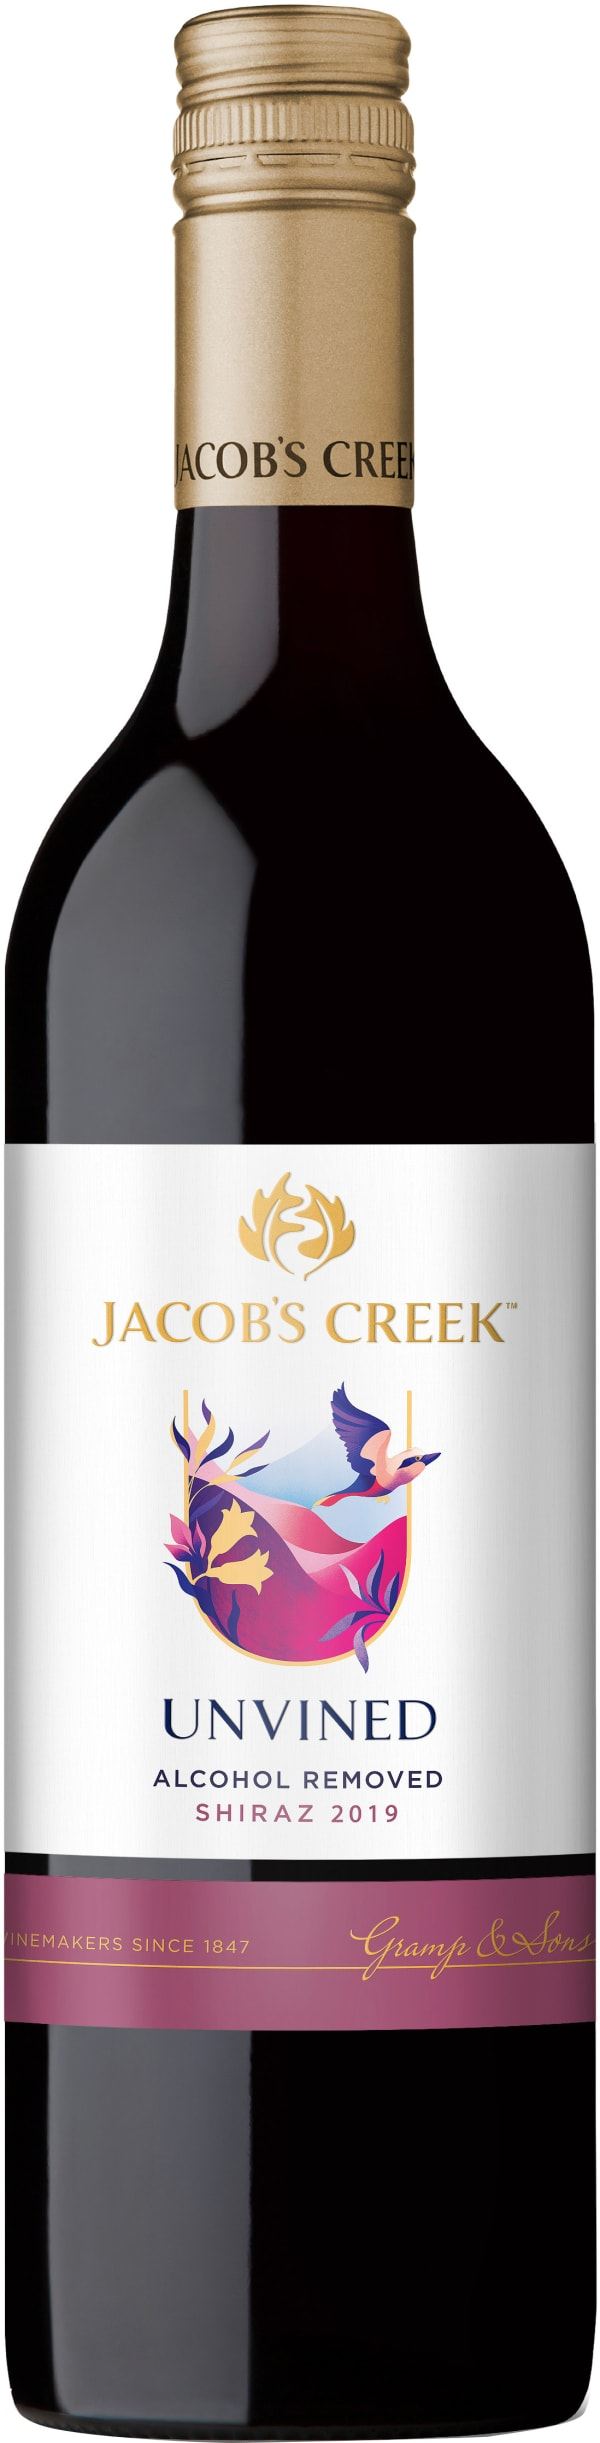 Jacob's Creek UnVined Shiraz 2018